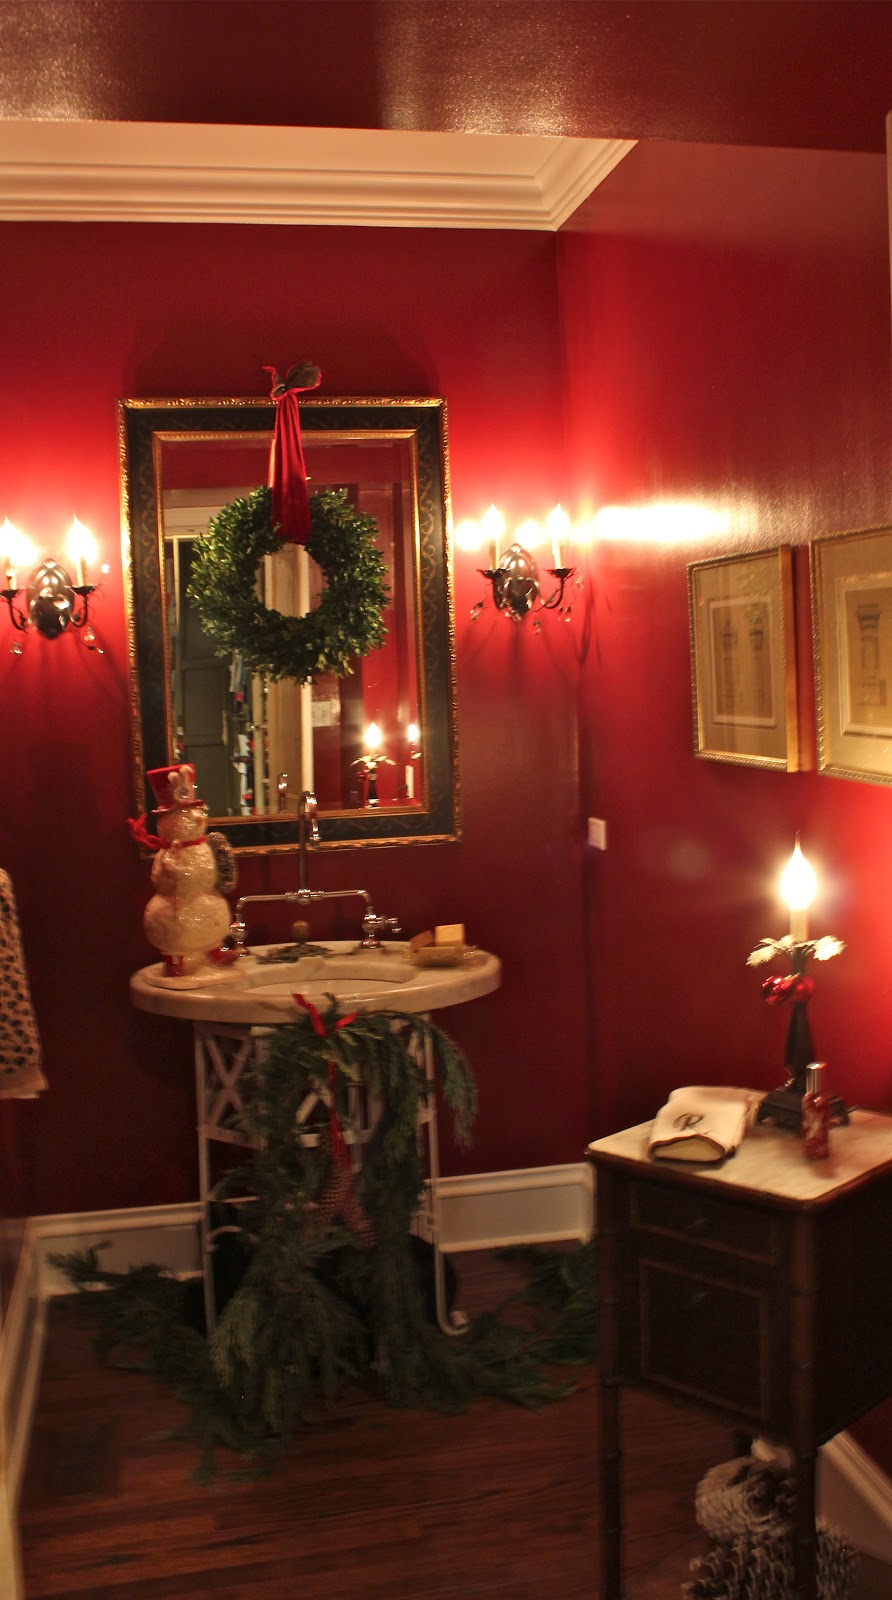 How To Decorate A Small Bathroom For Christmas: 5th And State: Our Christmas Showhouse